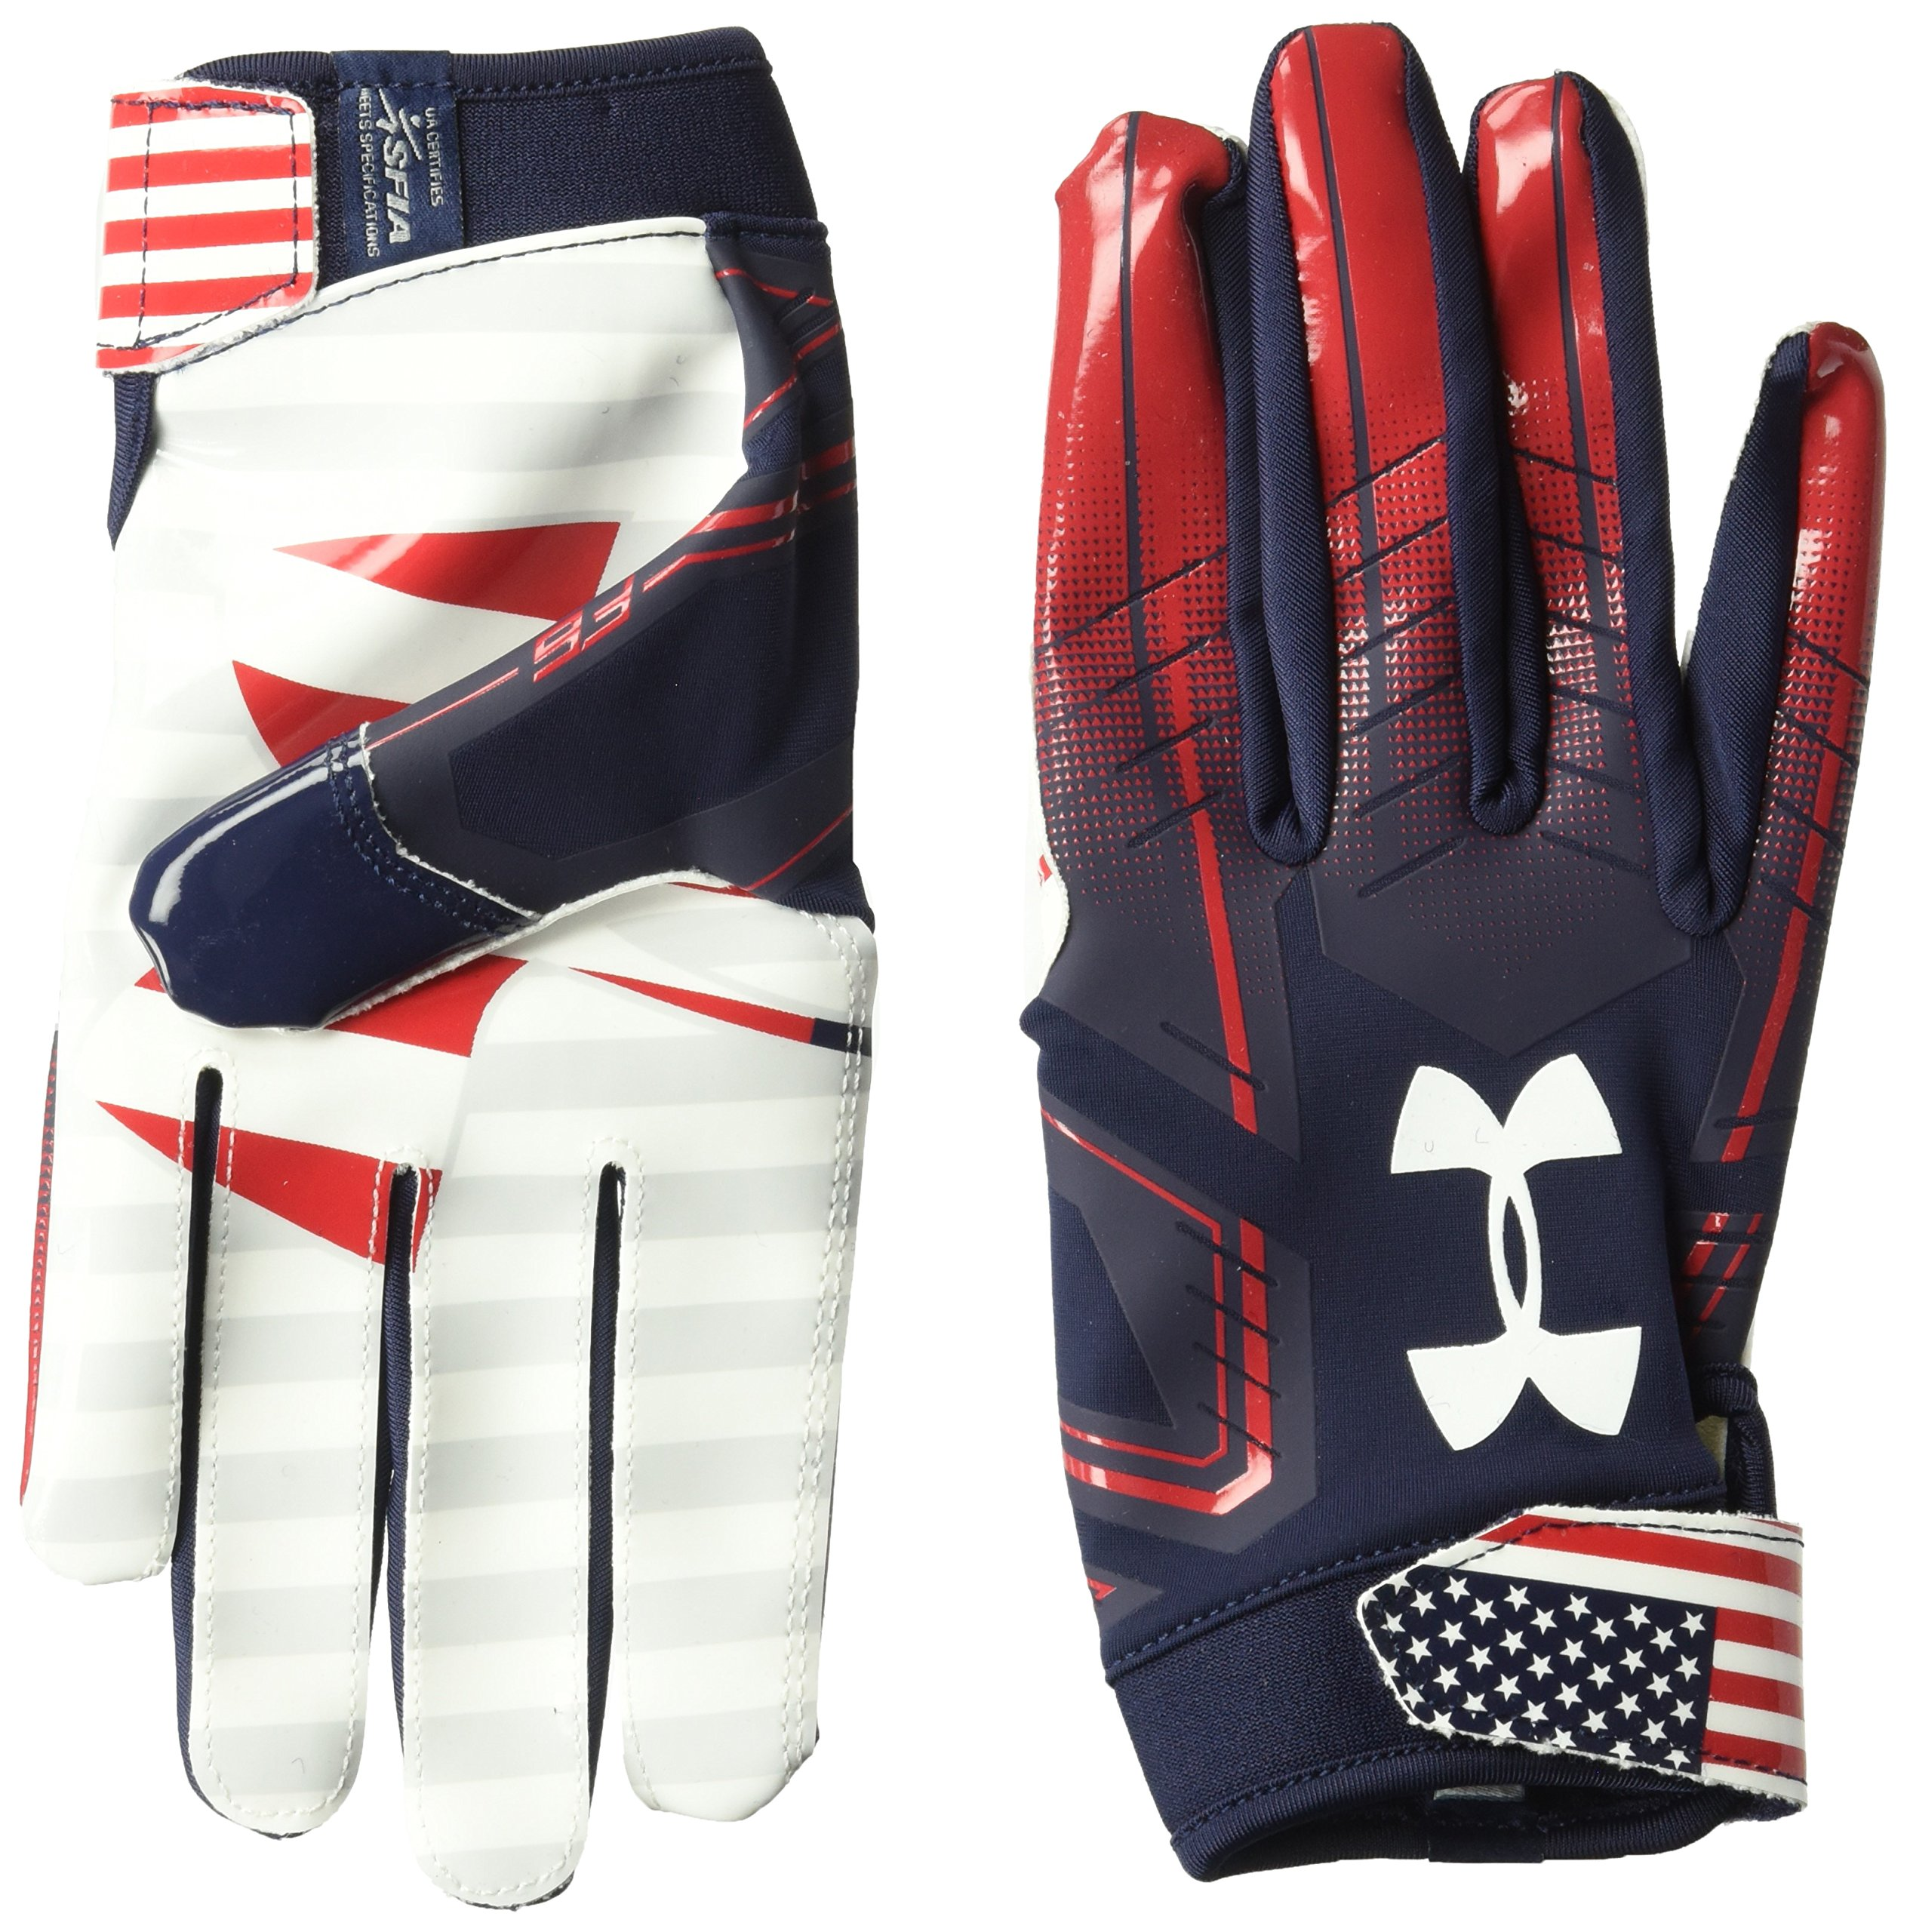 Under Armour Men's F6 LE Football Gloves, Midnight Navy (410)/White, Medium